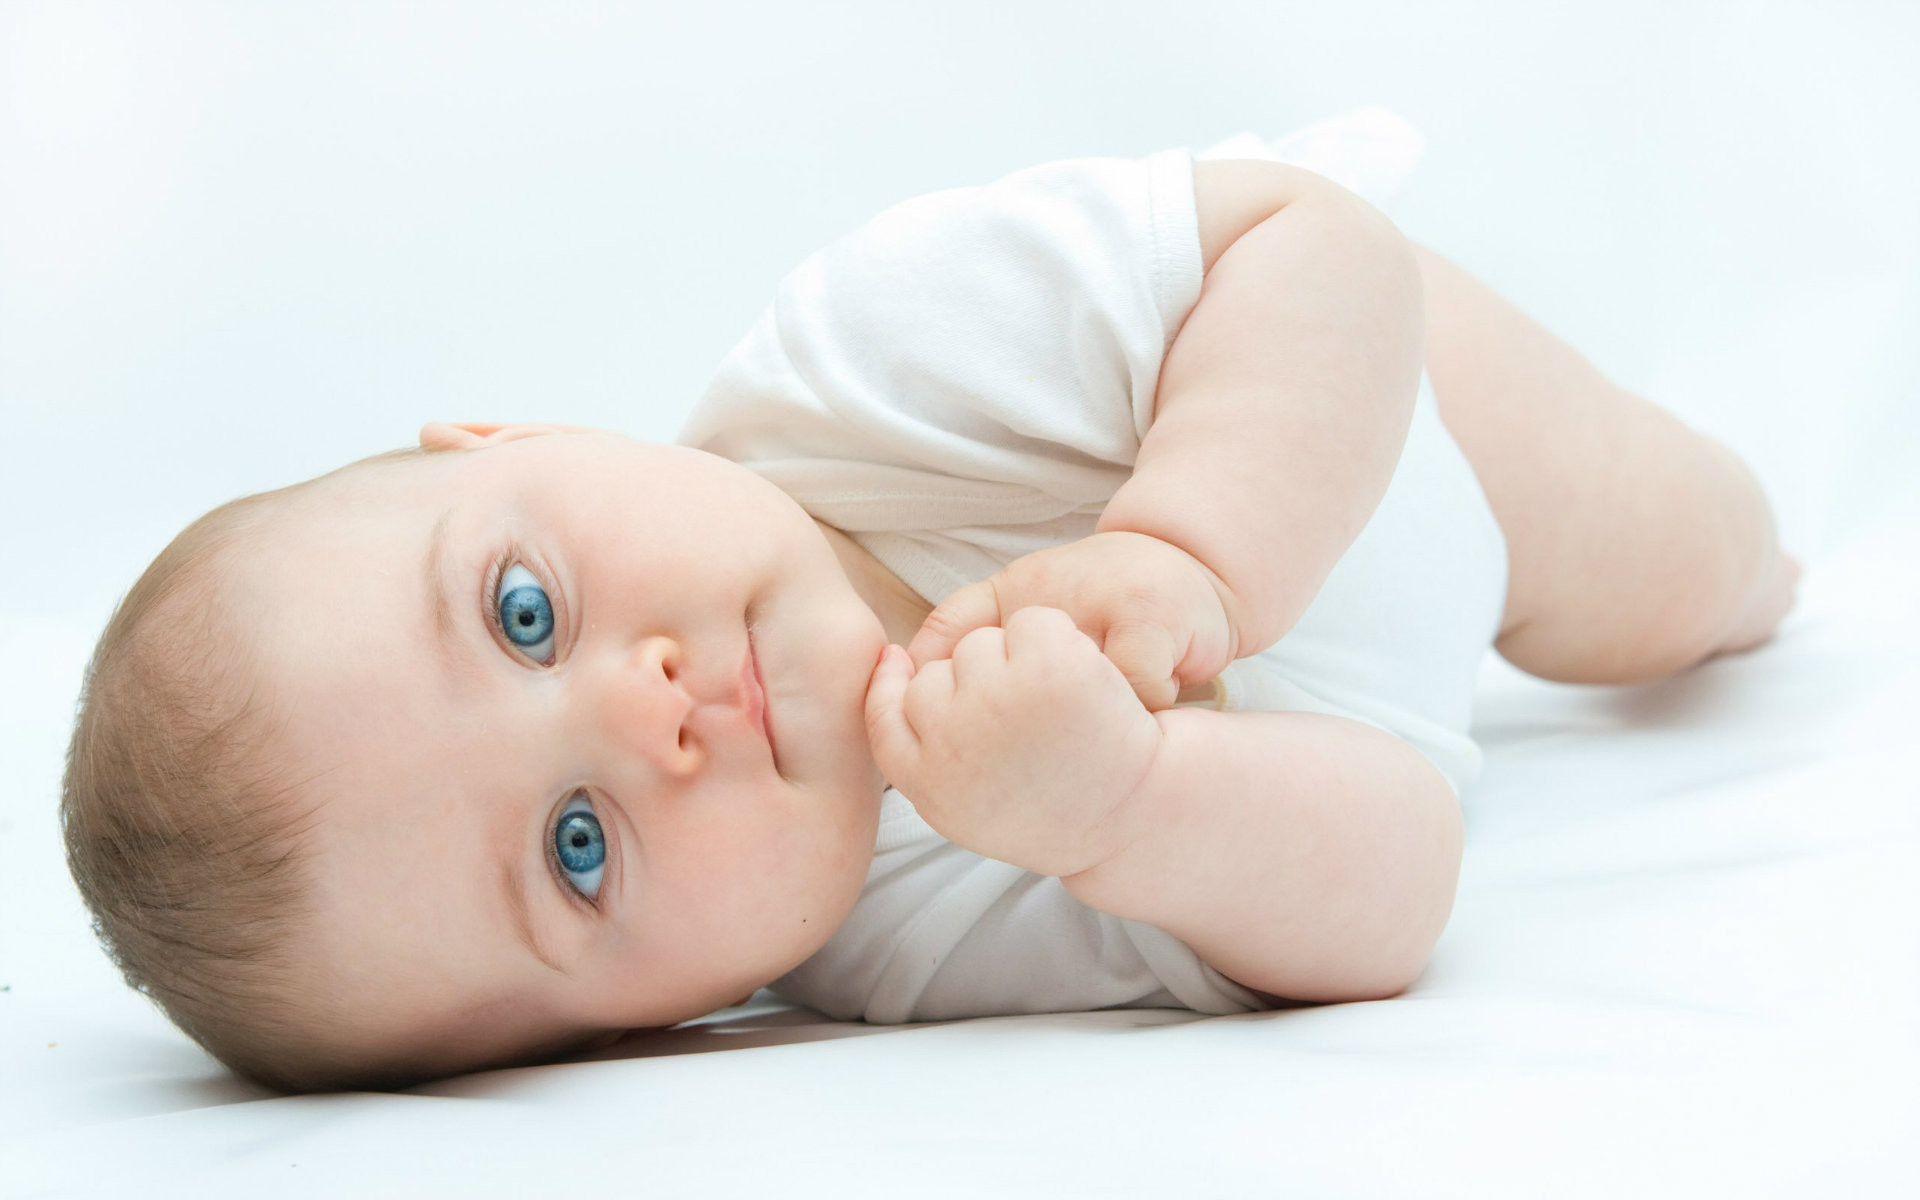 Cute Baby Boy Wallpapers: Cute Baby Boy Wallpapers (66+ Images